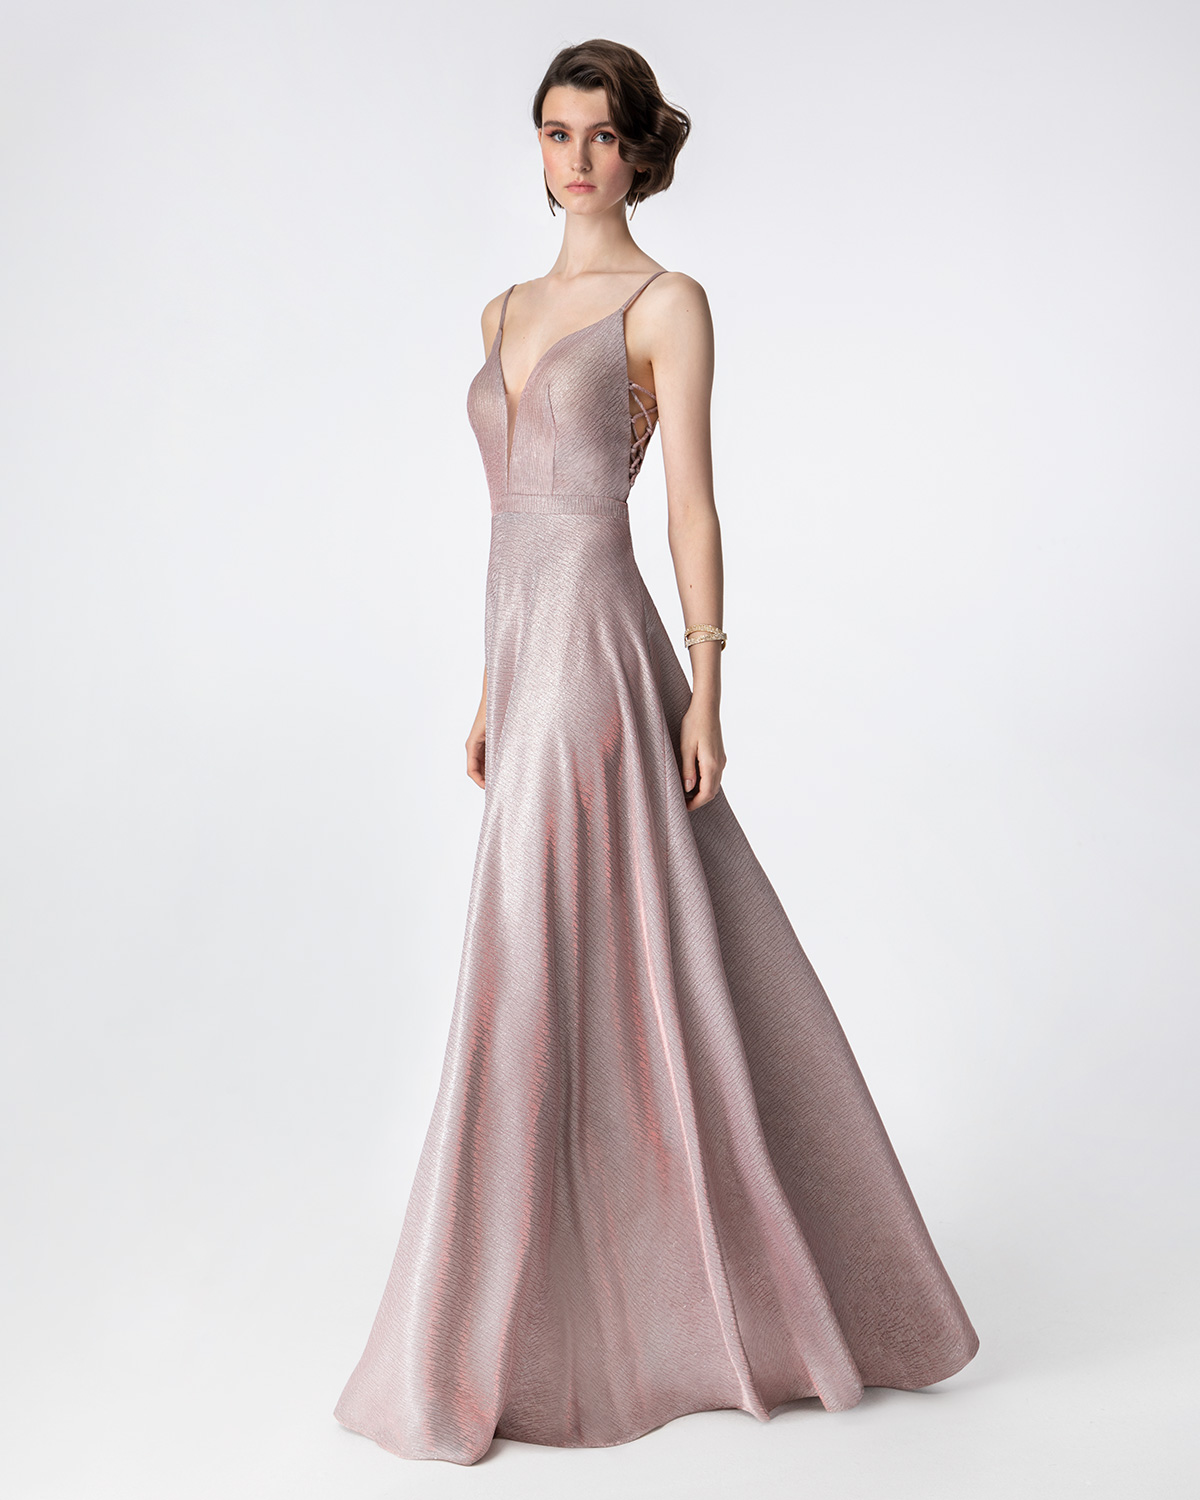 Cocktail Dresses / Long cocktail dress with shining fabric